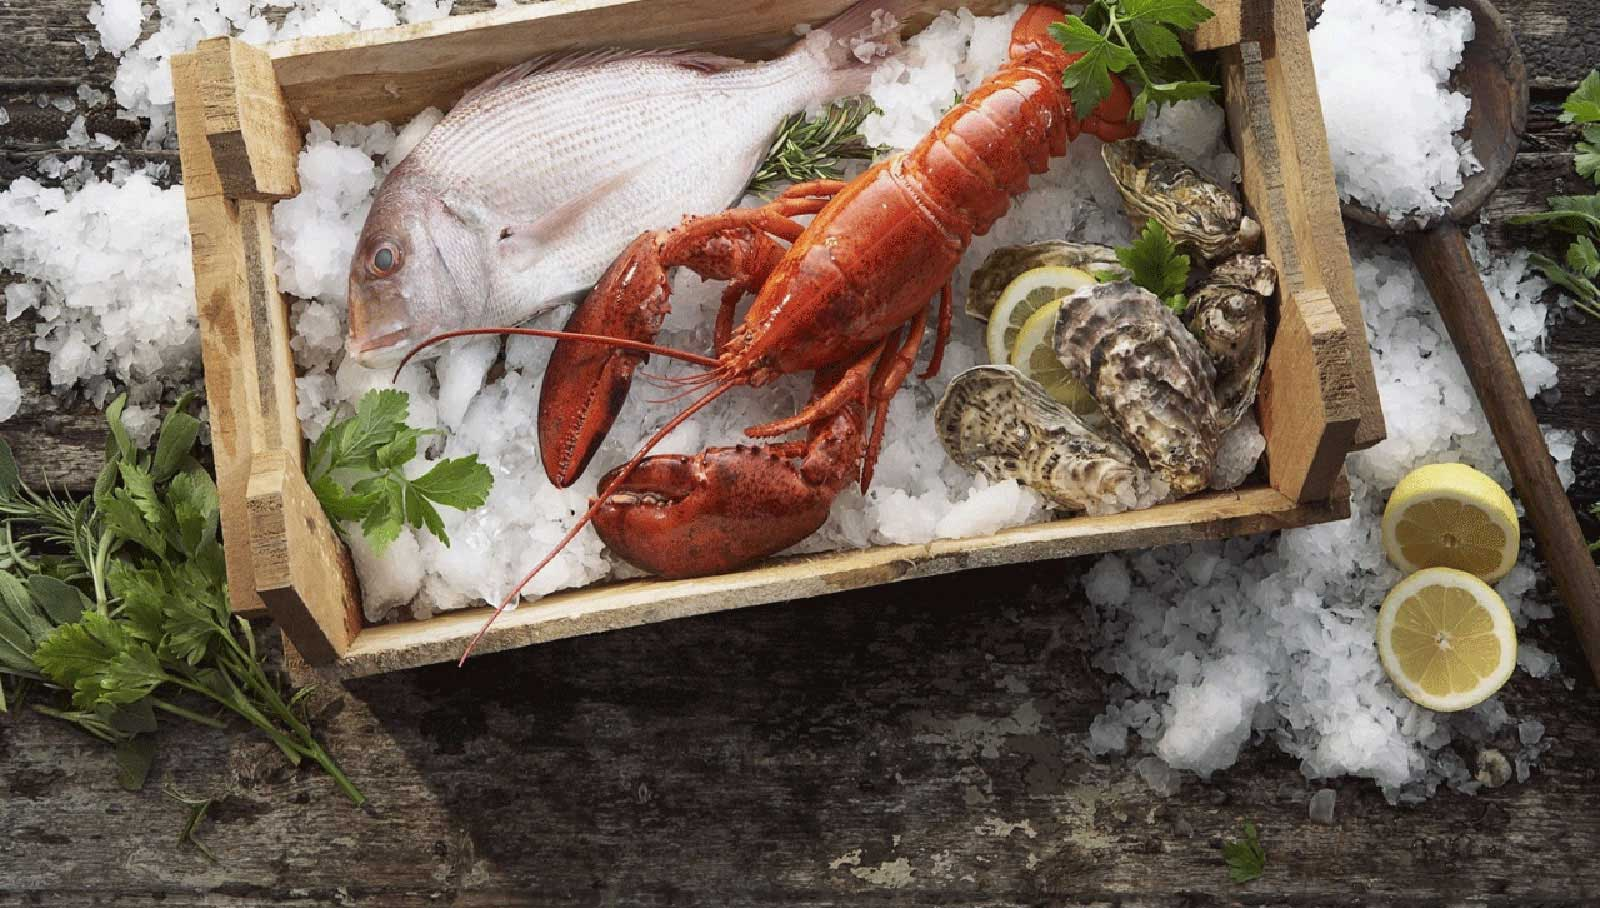 buy fresh fish delivered to your home from the online